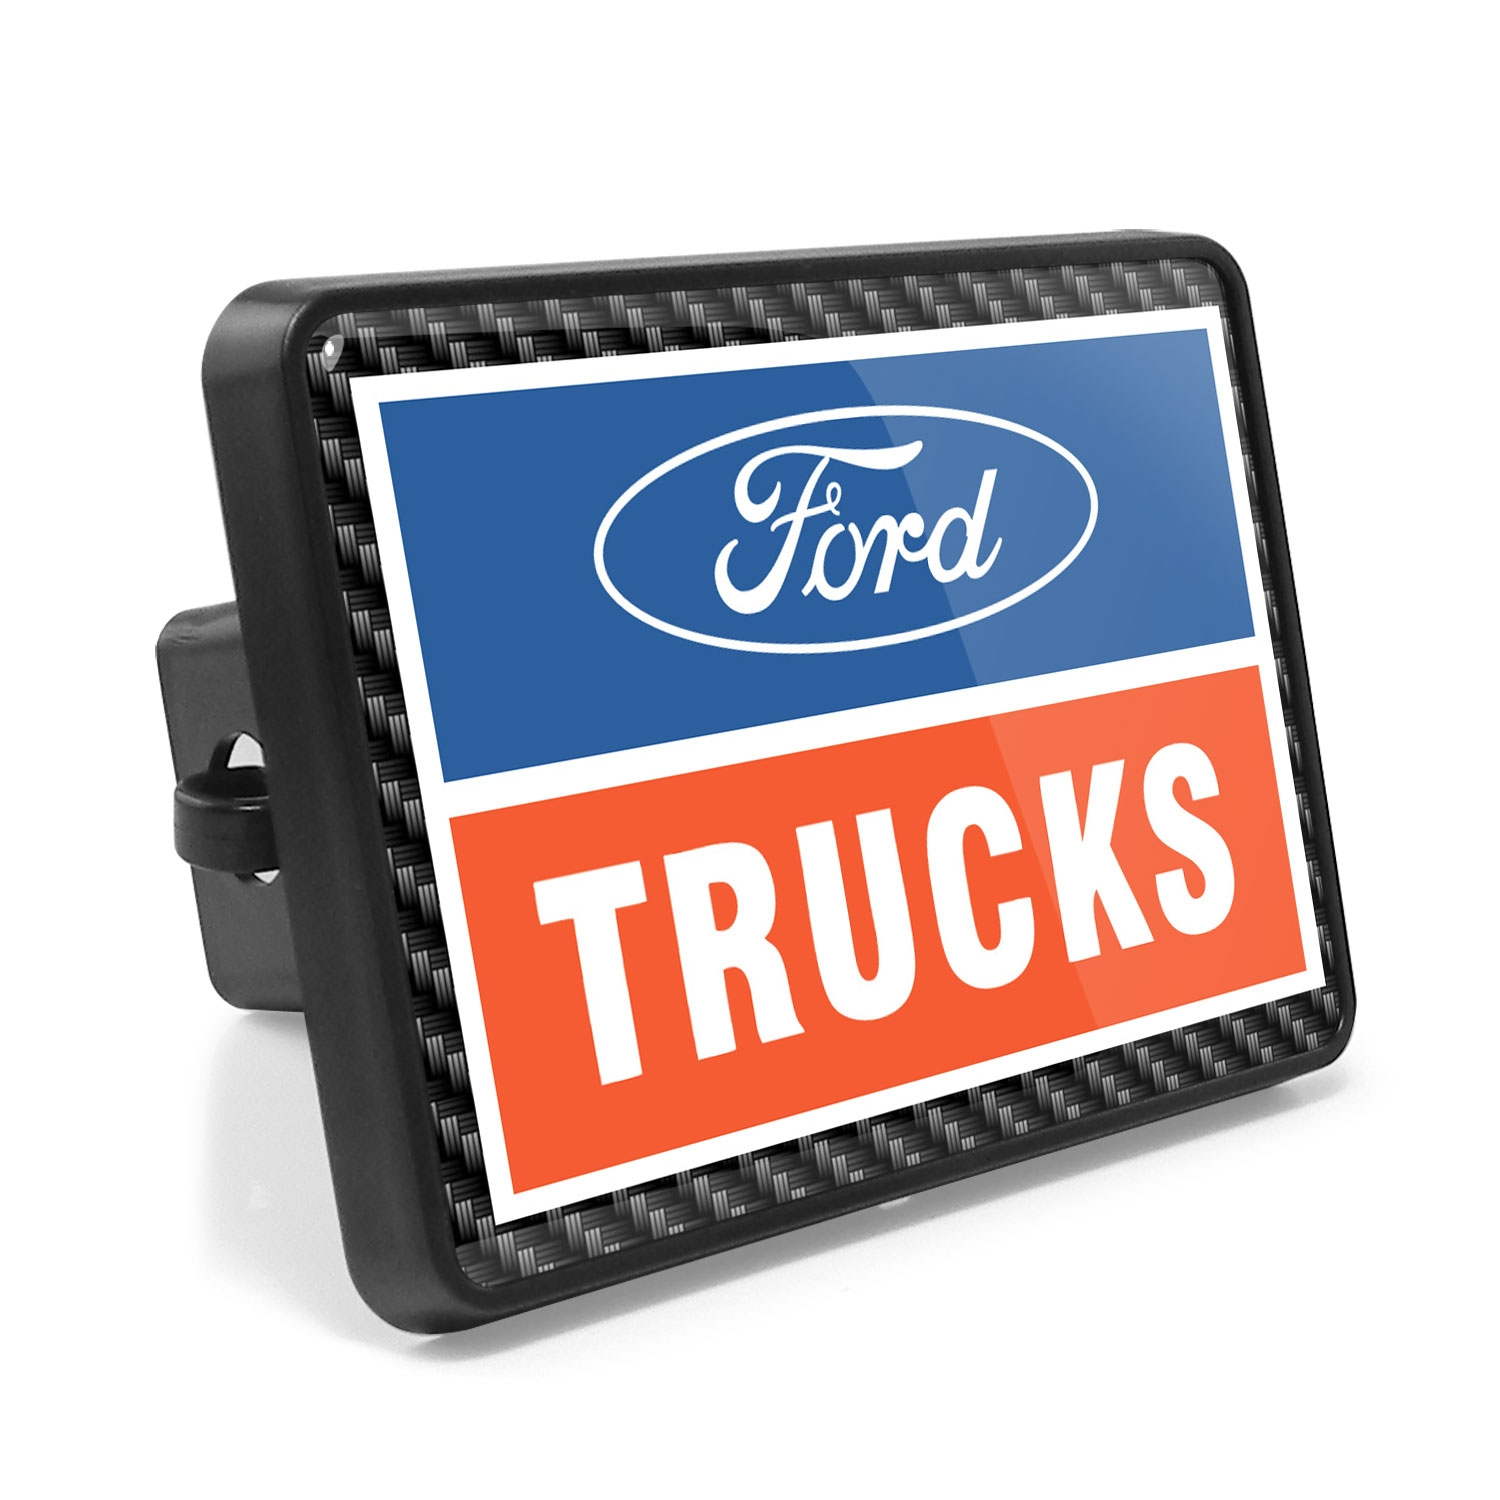 Ford Trucks Carbon Fiber Look UV Graphic Metal Plate on ABS Plastic 2 inch Tow Hitch Cover